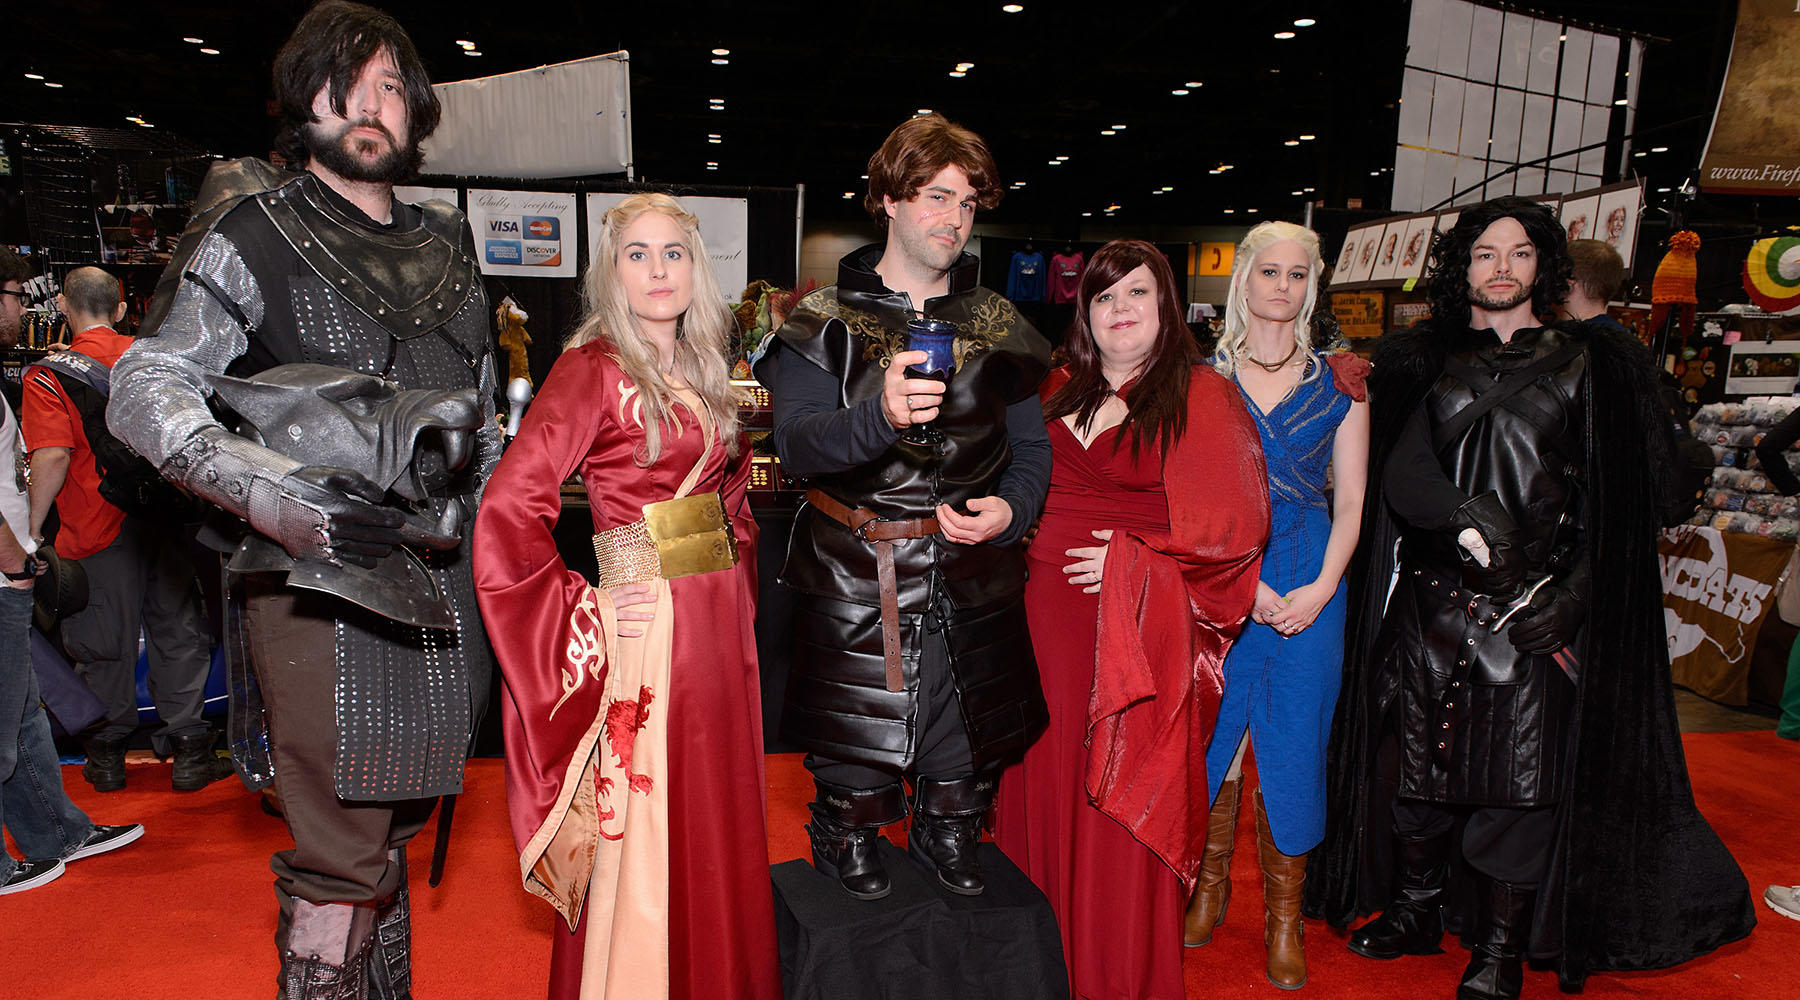 The best Game of Thrones cosplay out of Chicago